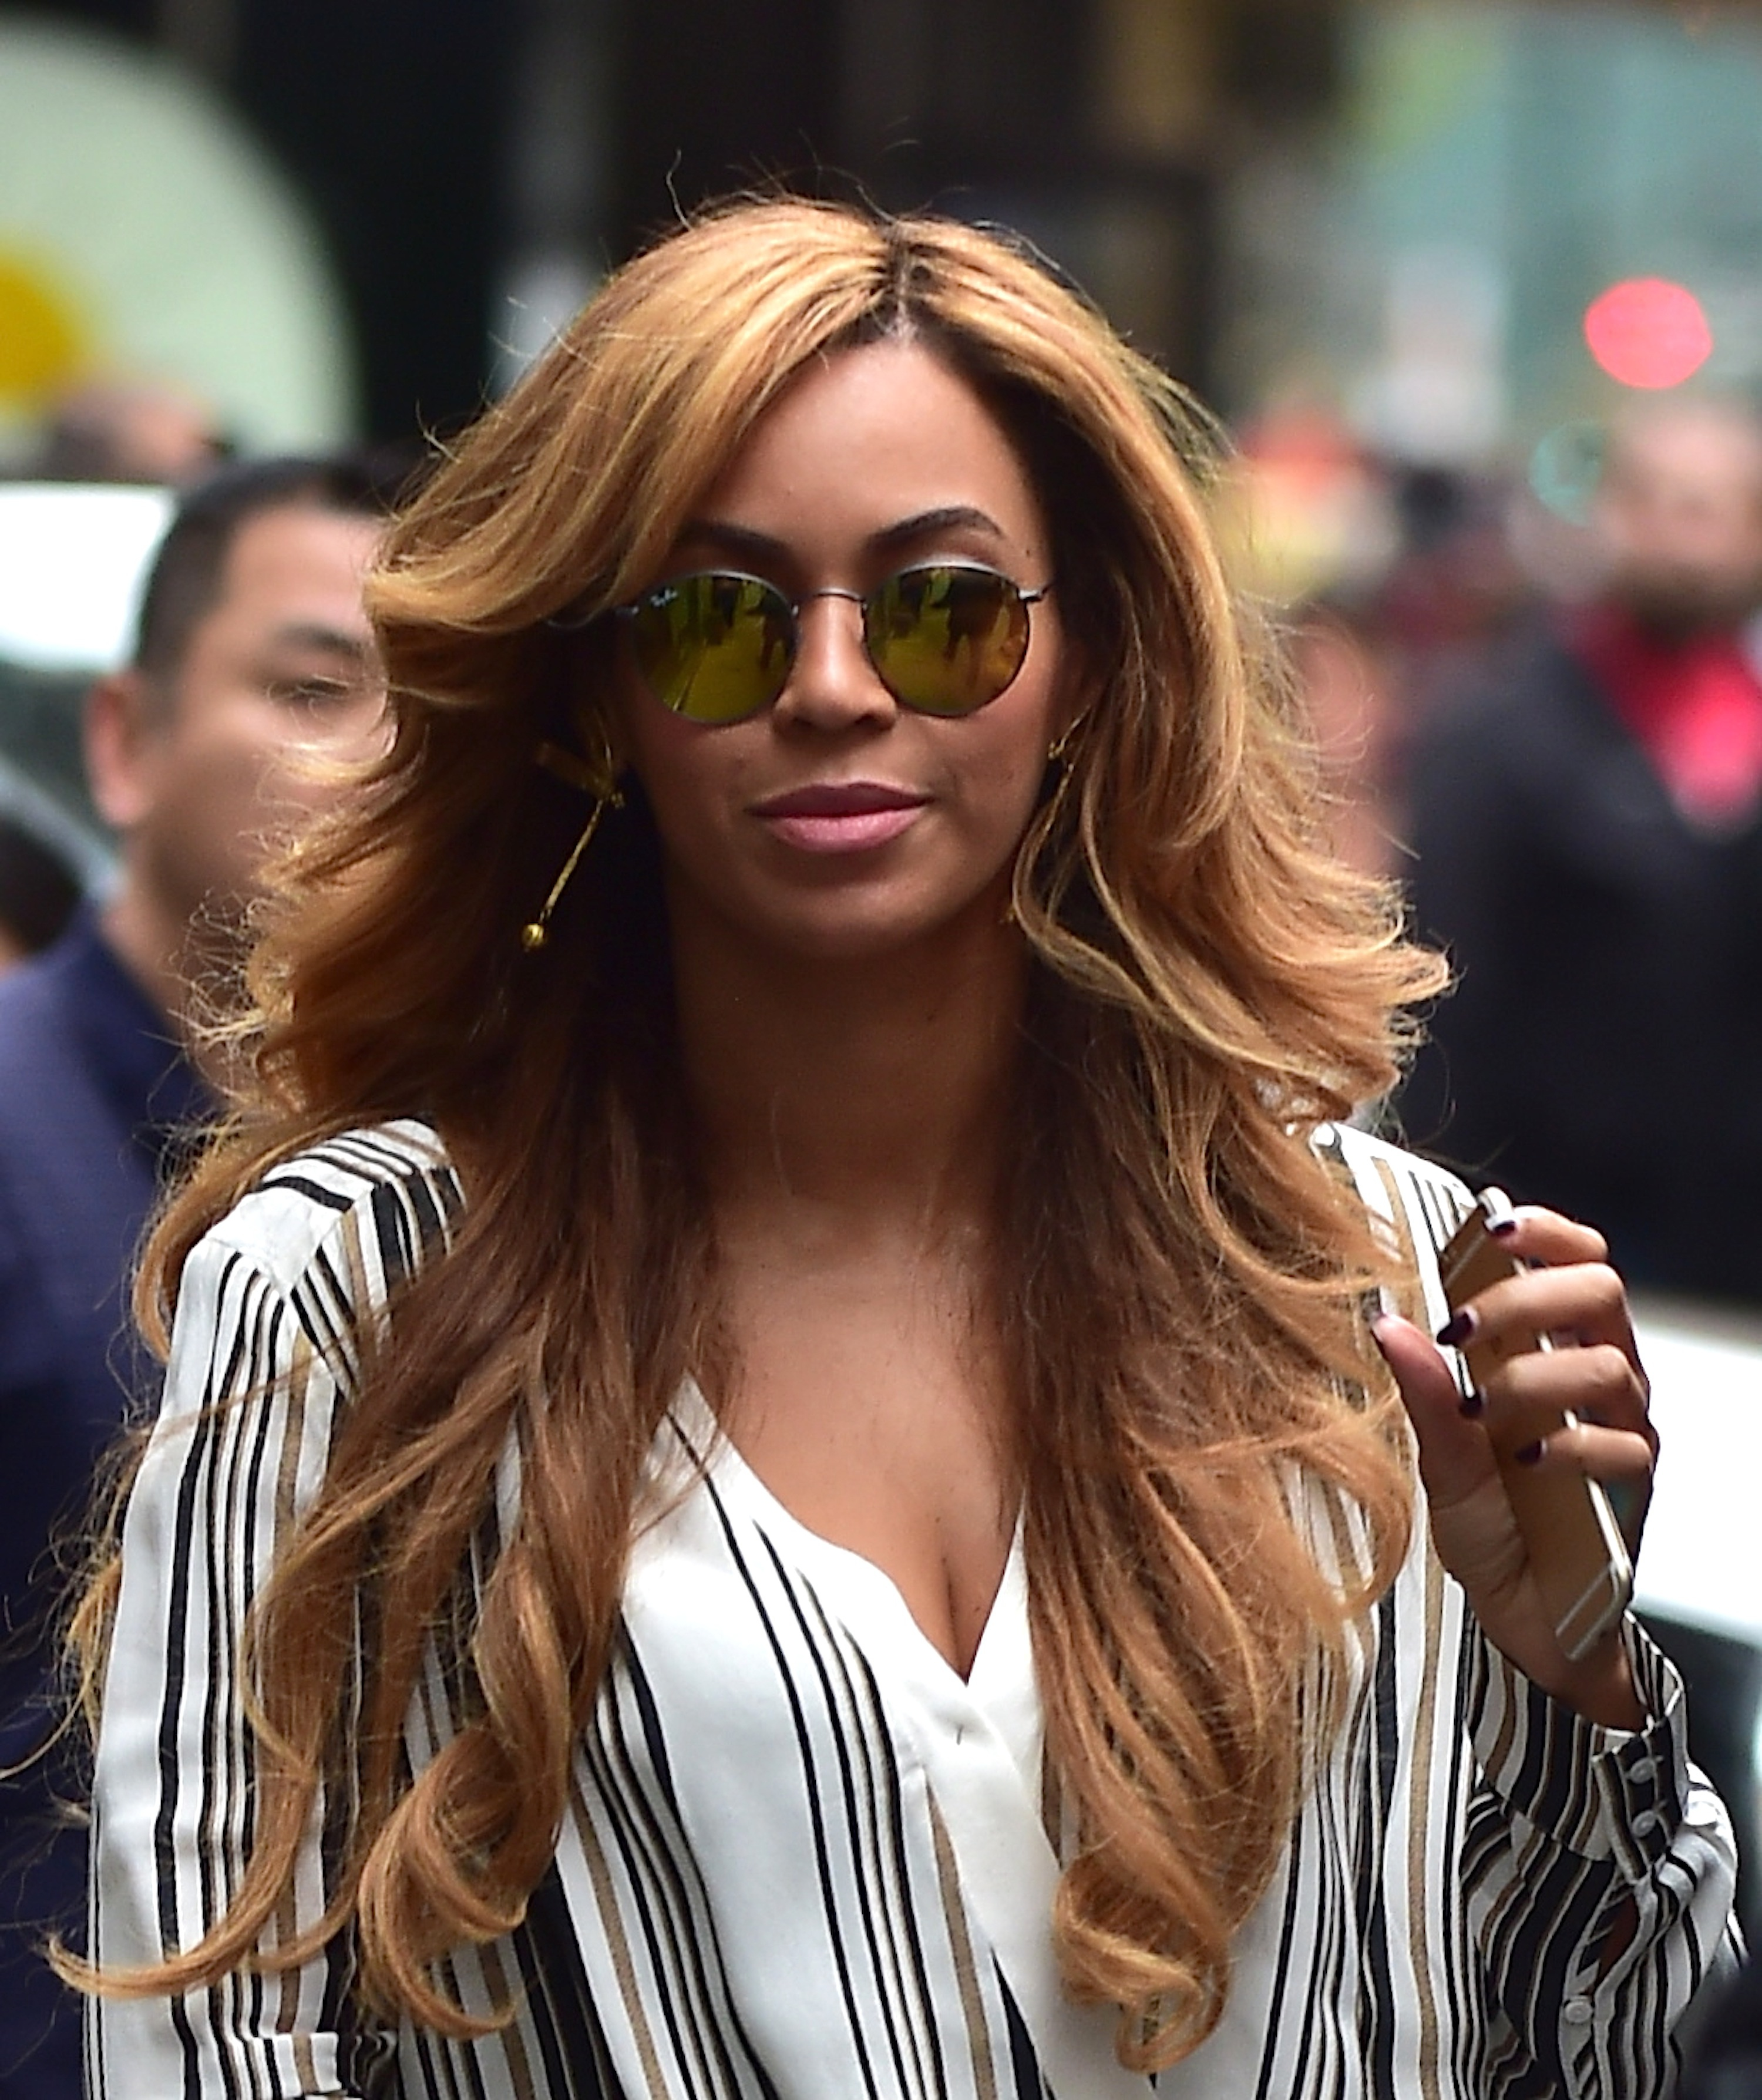 Beyonce Knowles is seen in Midtown on October 29, 2014 in New York City.